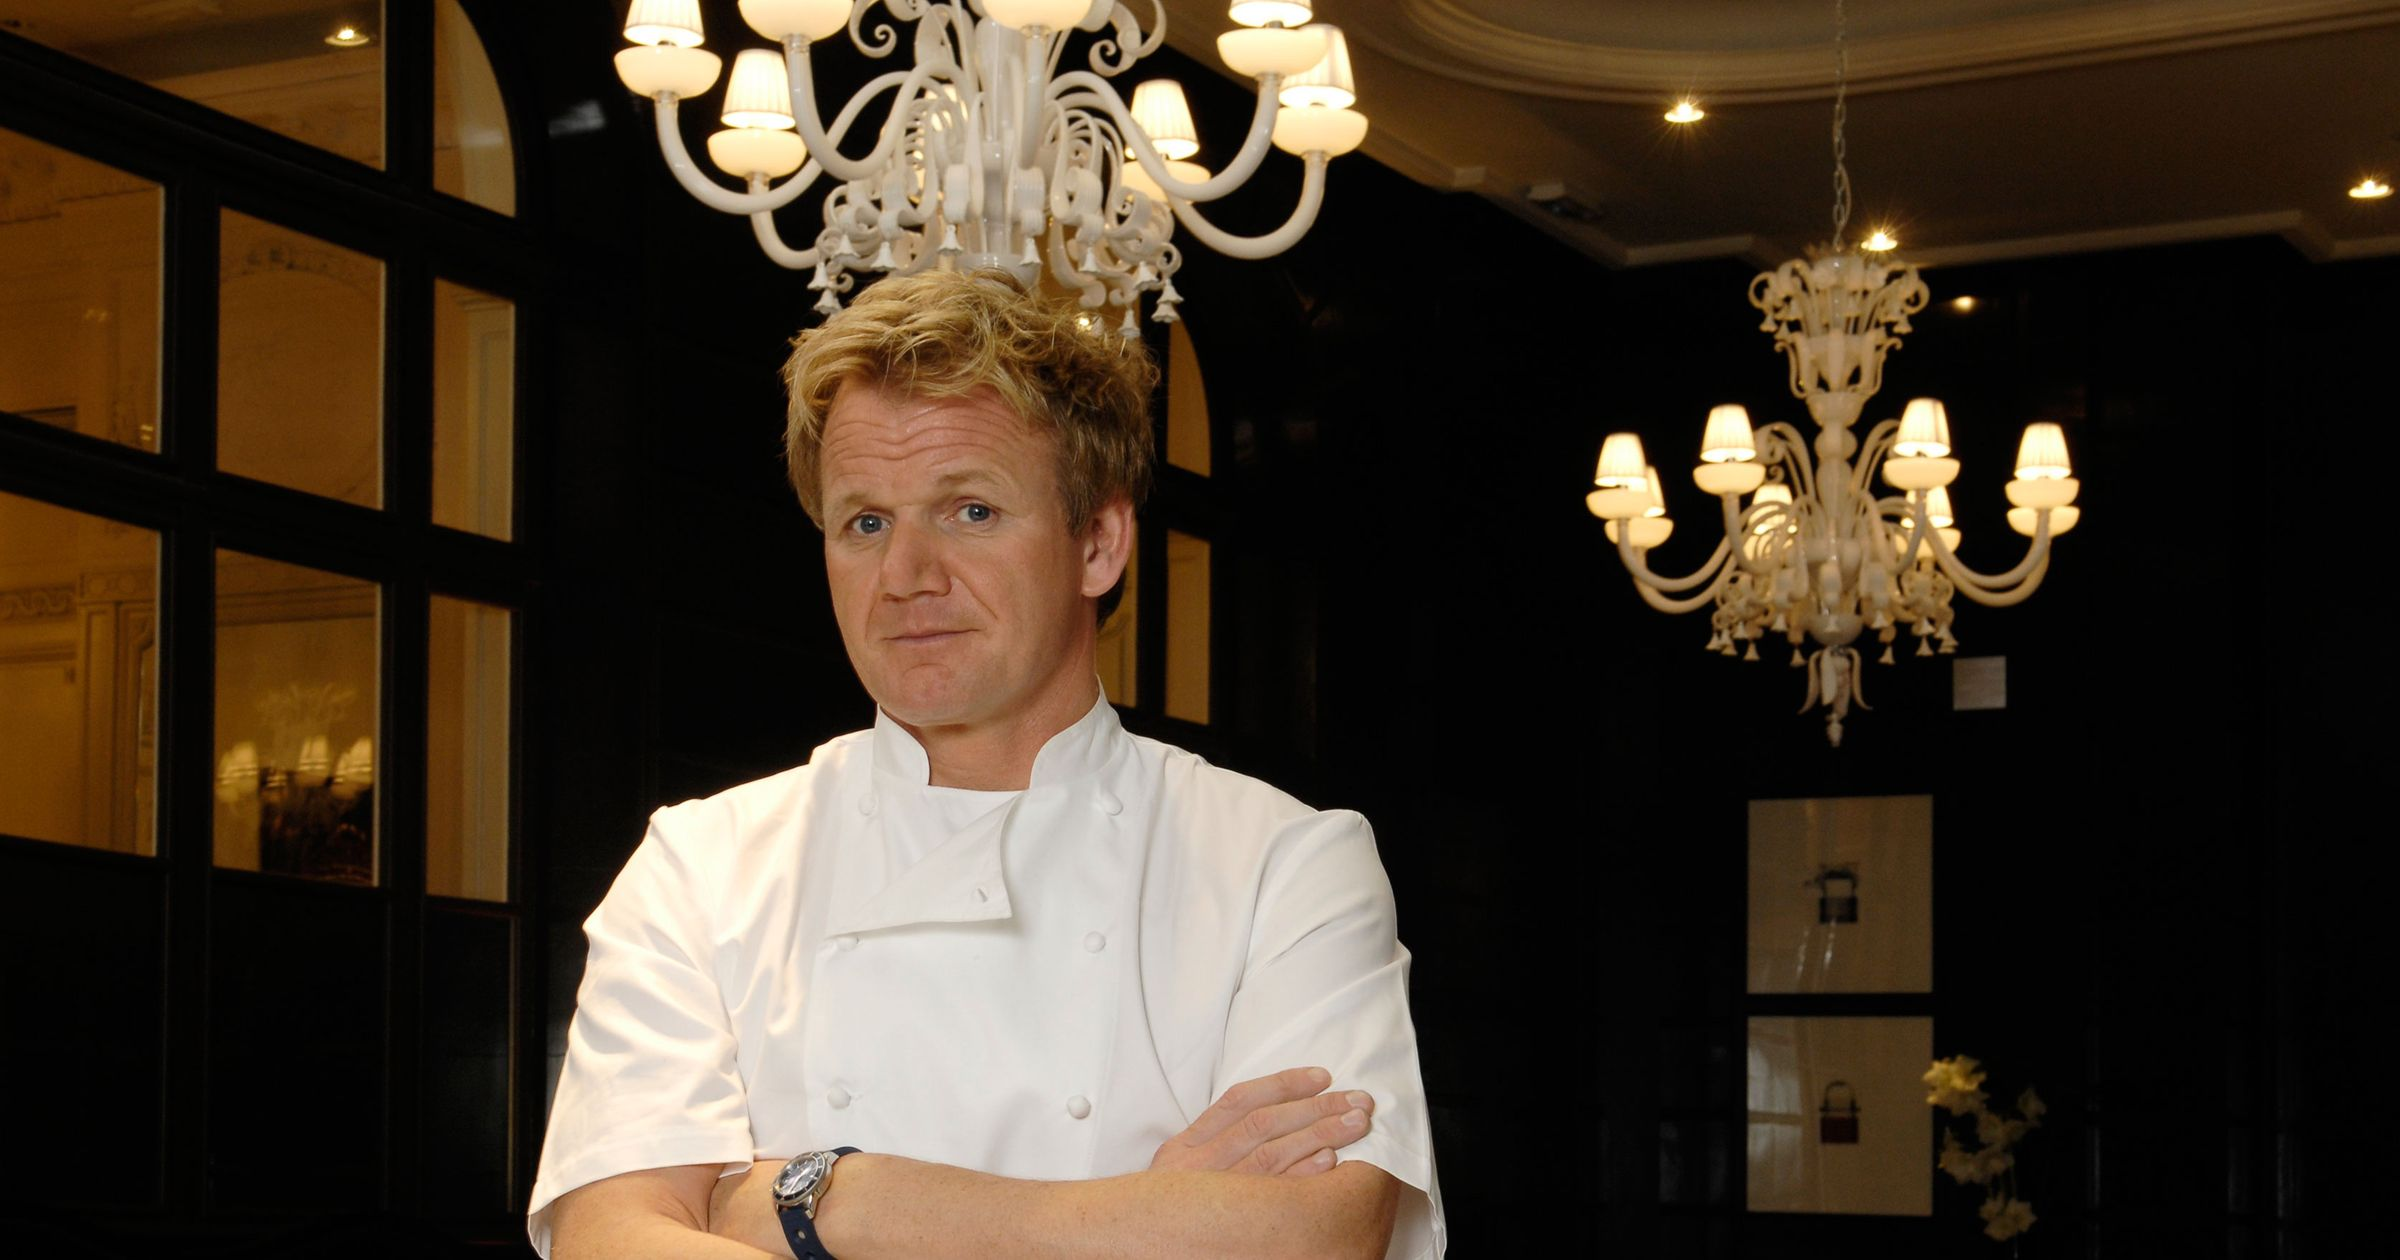 Gordon ramsay announces end of kitchen nightmares grub for Kitchen nightmares updates